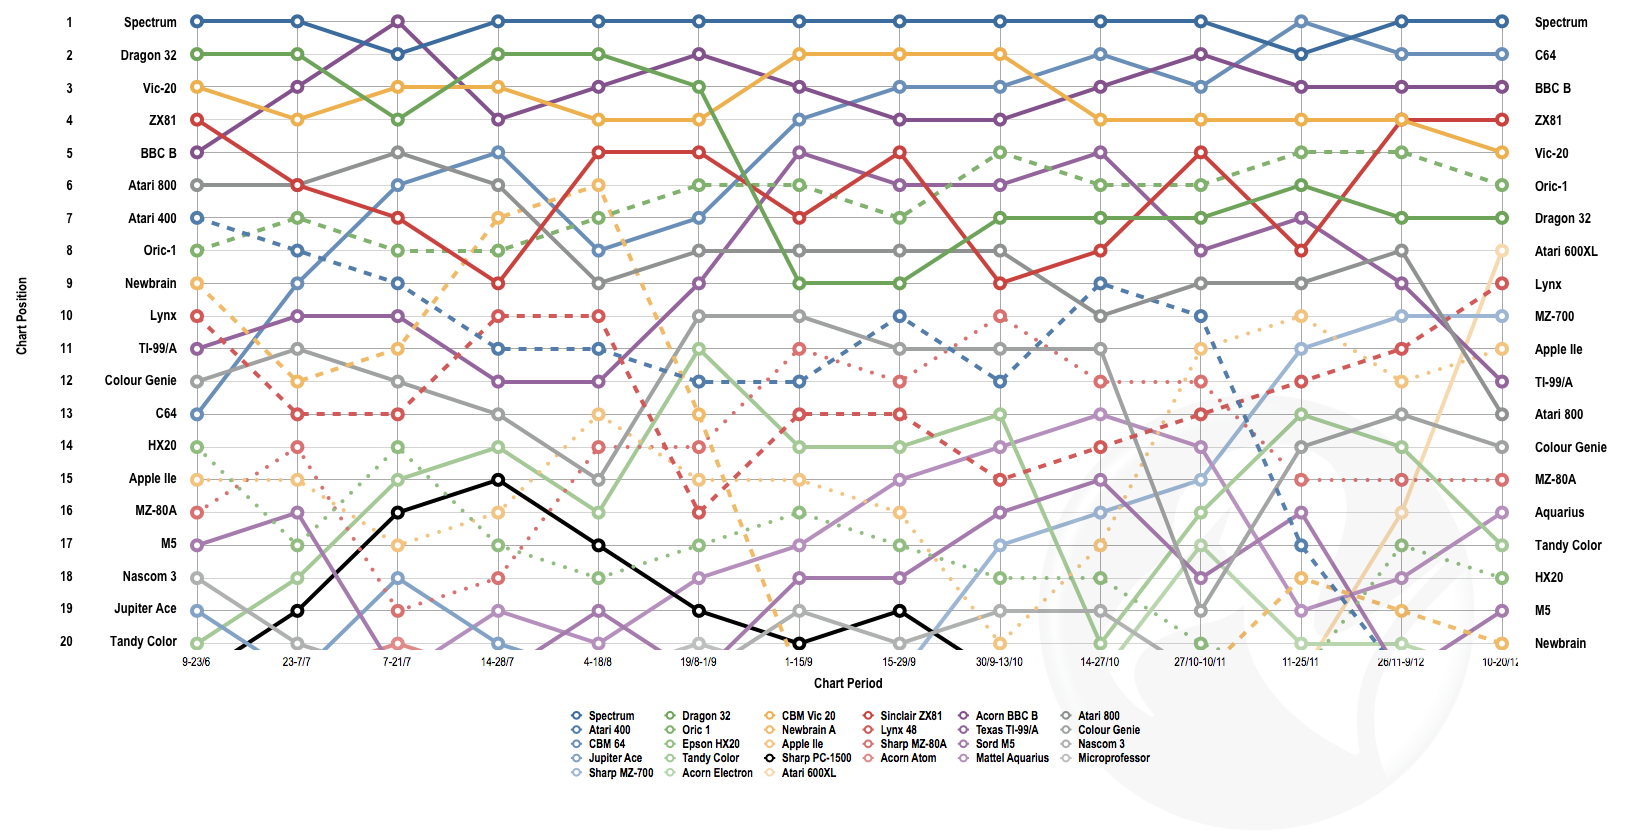 A chart with a gazillion lines that overwhelms the viewer